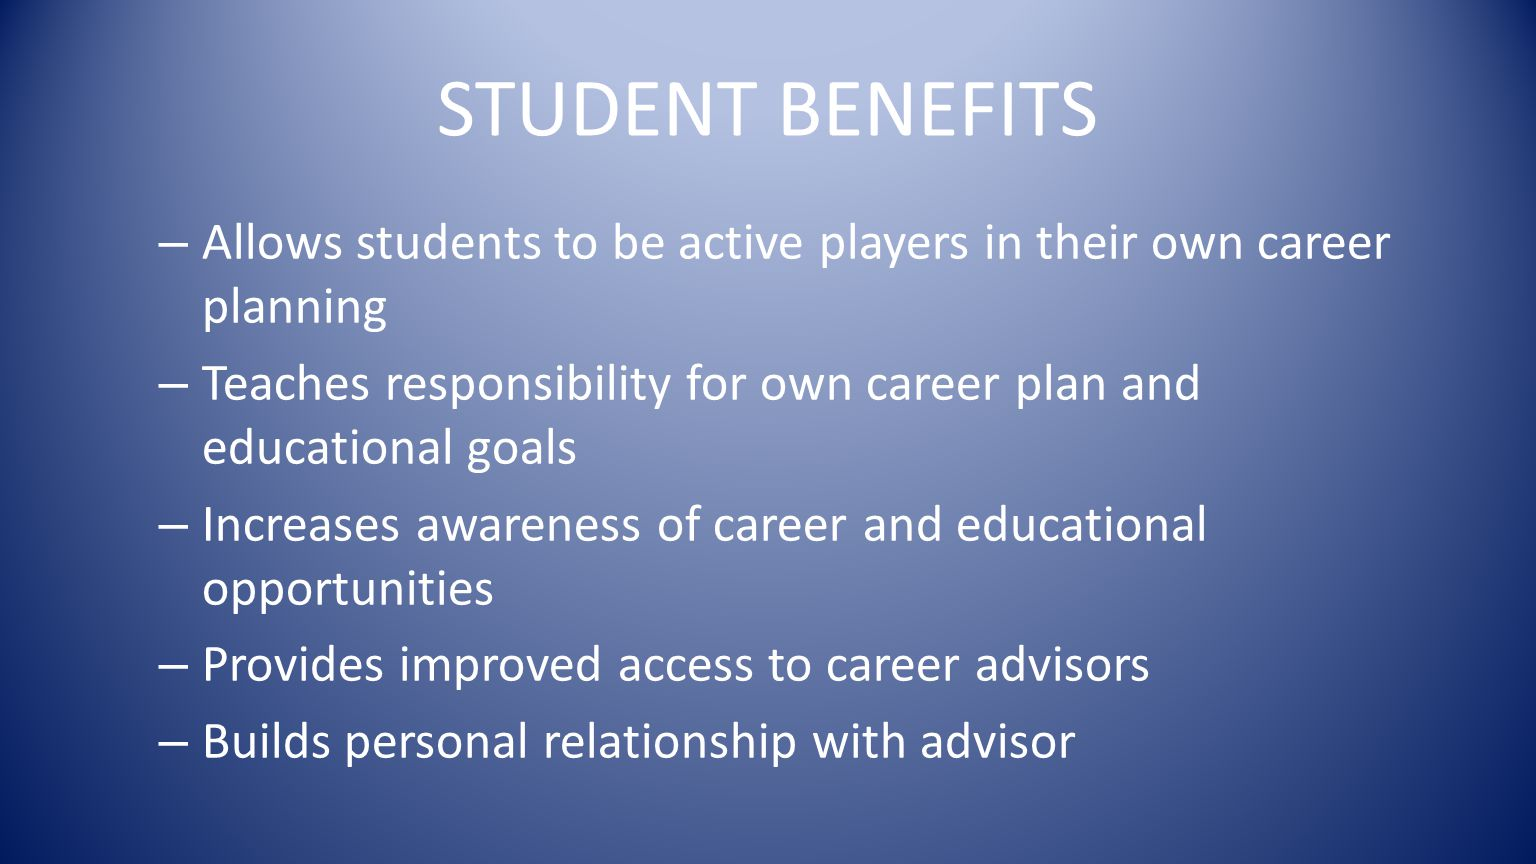 STUDENT BENEFITS – Allows students to be active players in their own career planning – Teaches responsibility for own career plan and educational goals – Increases awareness of career and educational opportunities – Provides improved access to career advisors – Builds personal relationship with advisor